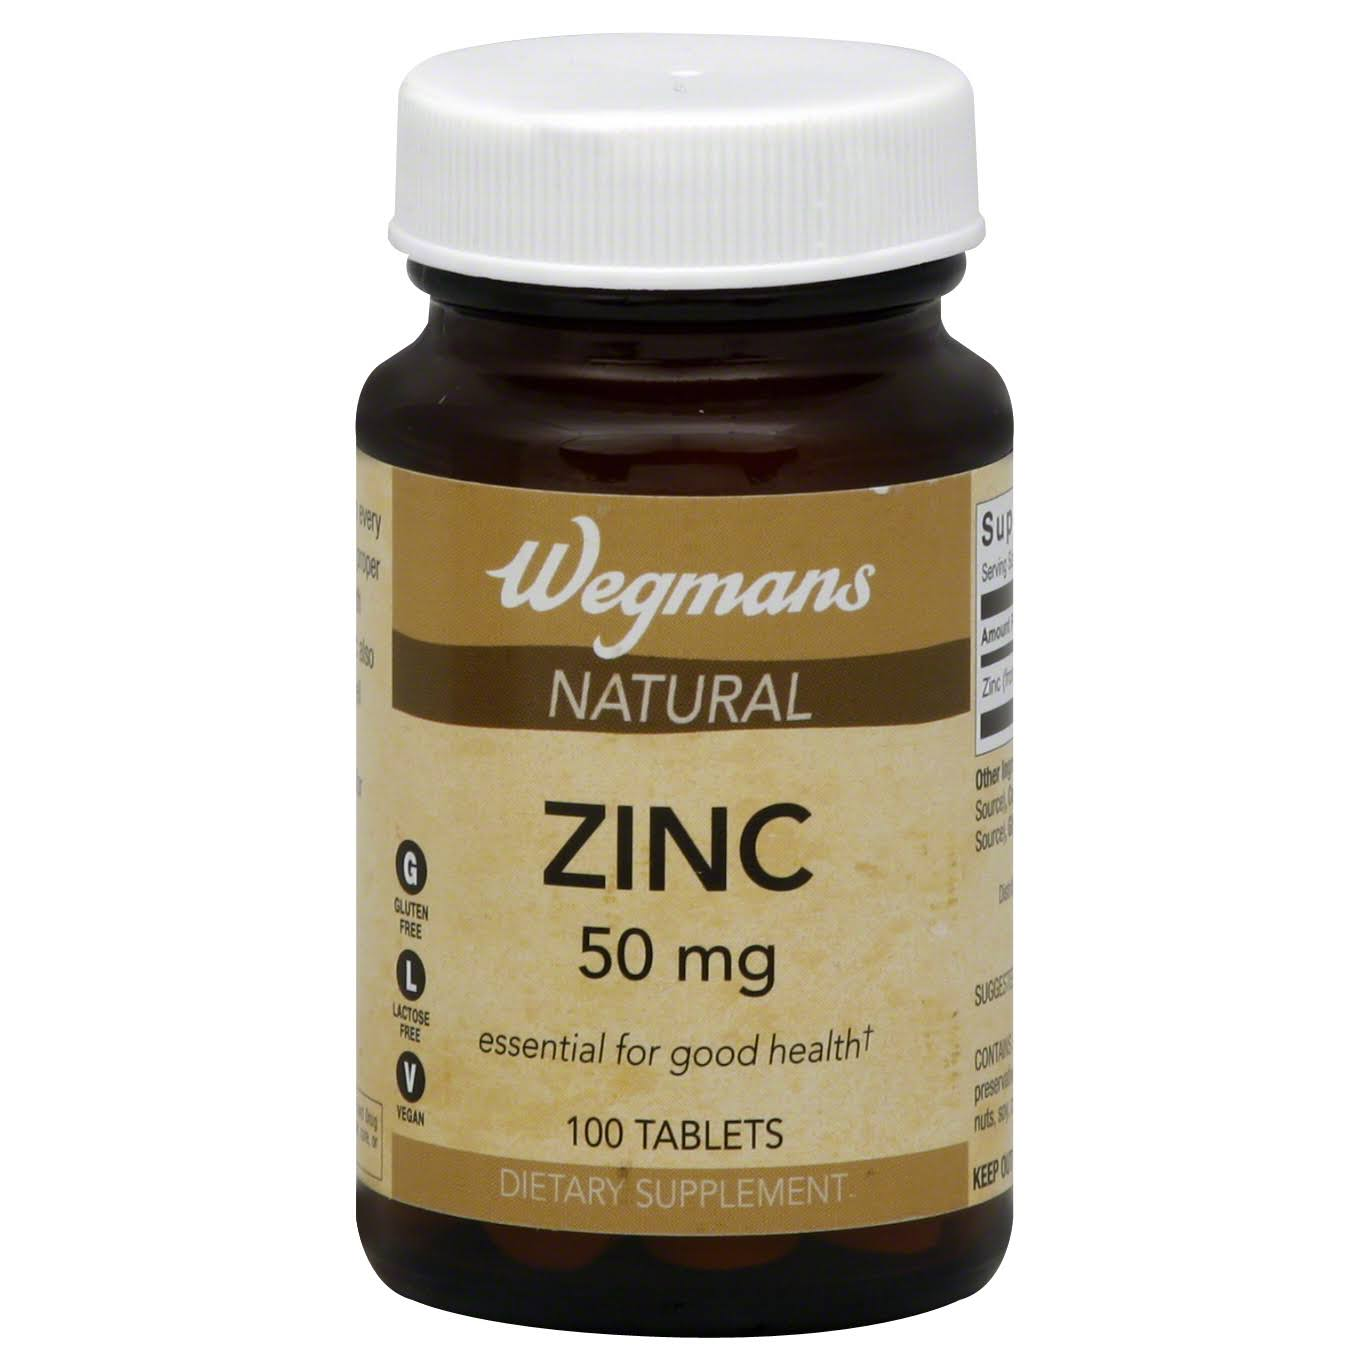 Wegmans Zinc, Natural, 50 mg, Tablets - 100 tablets